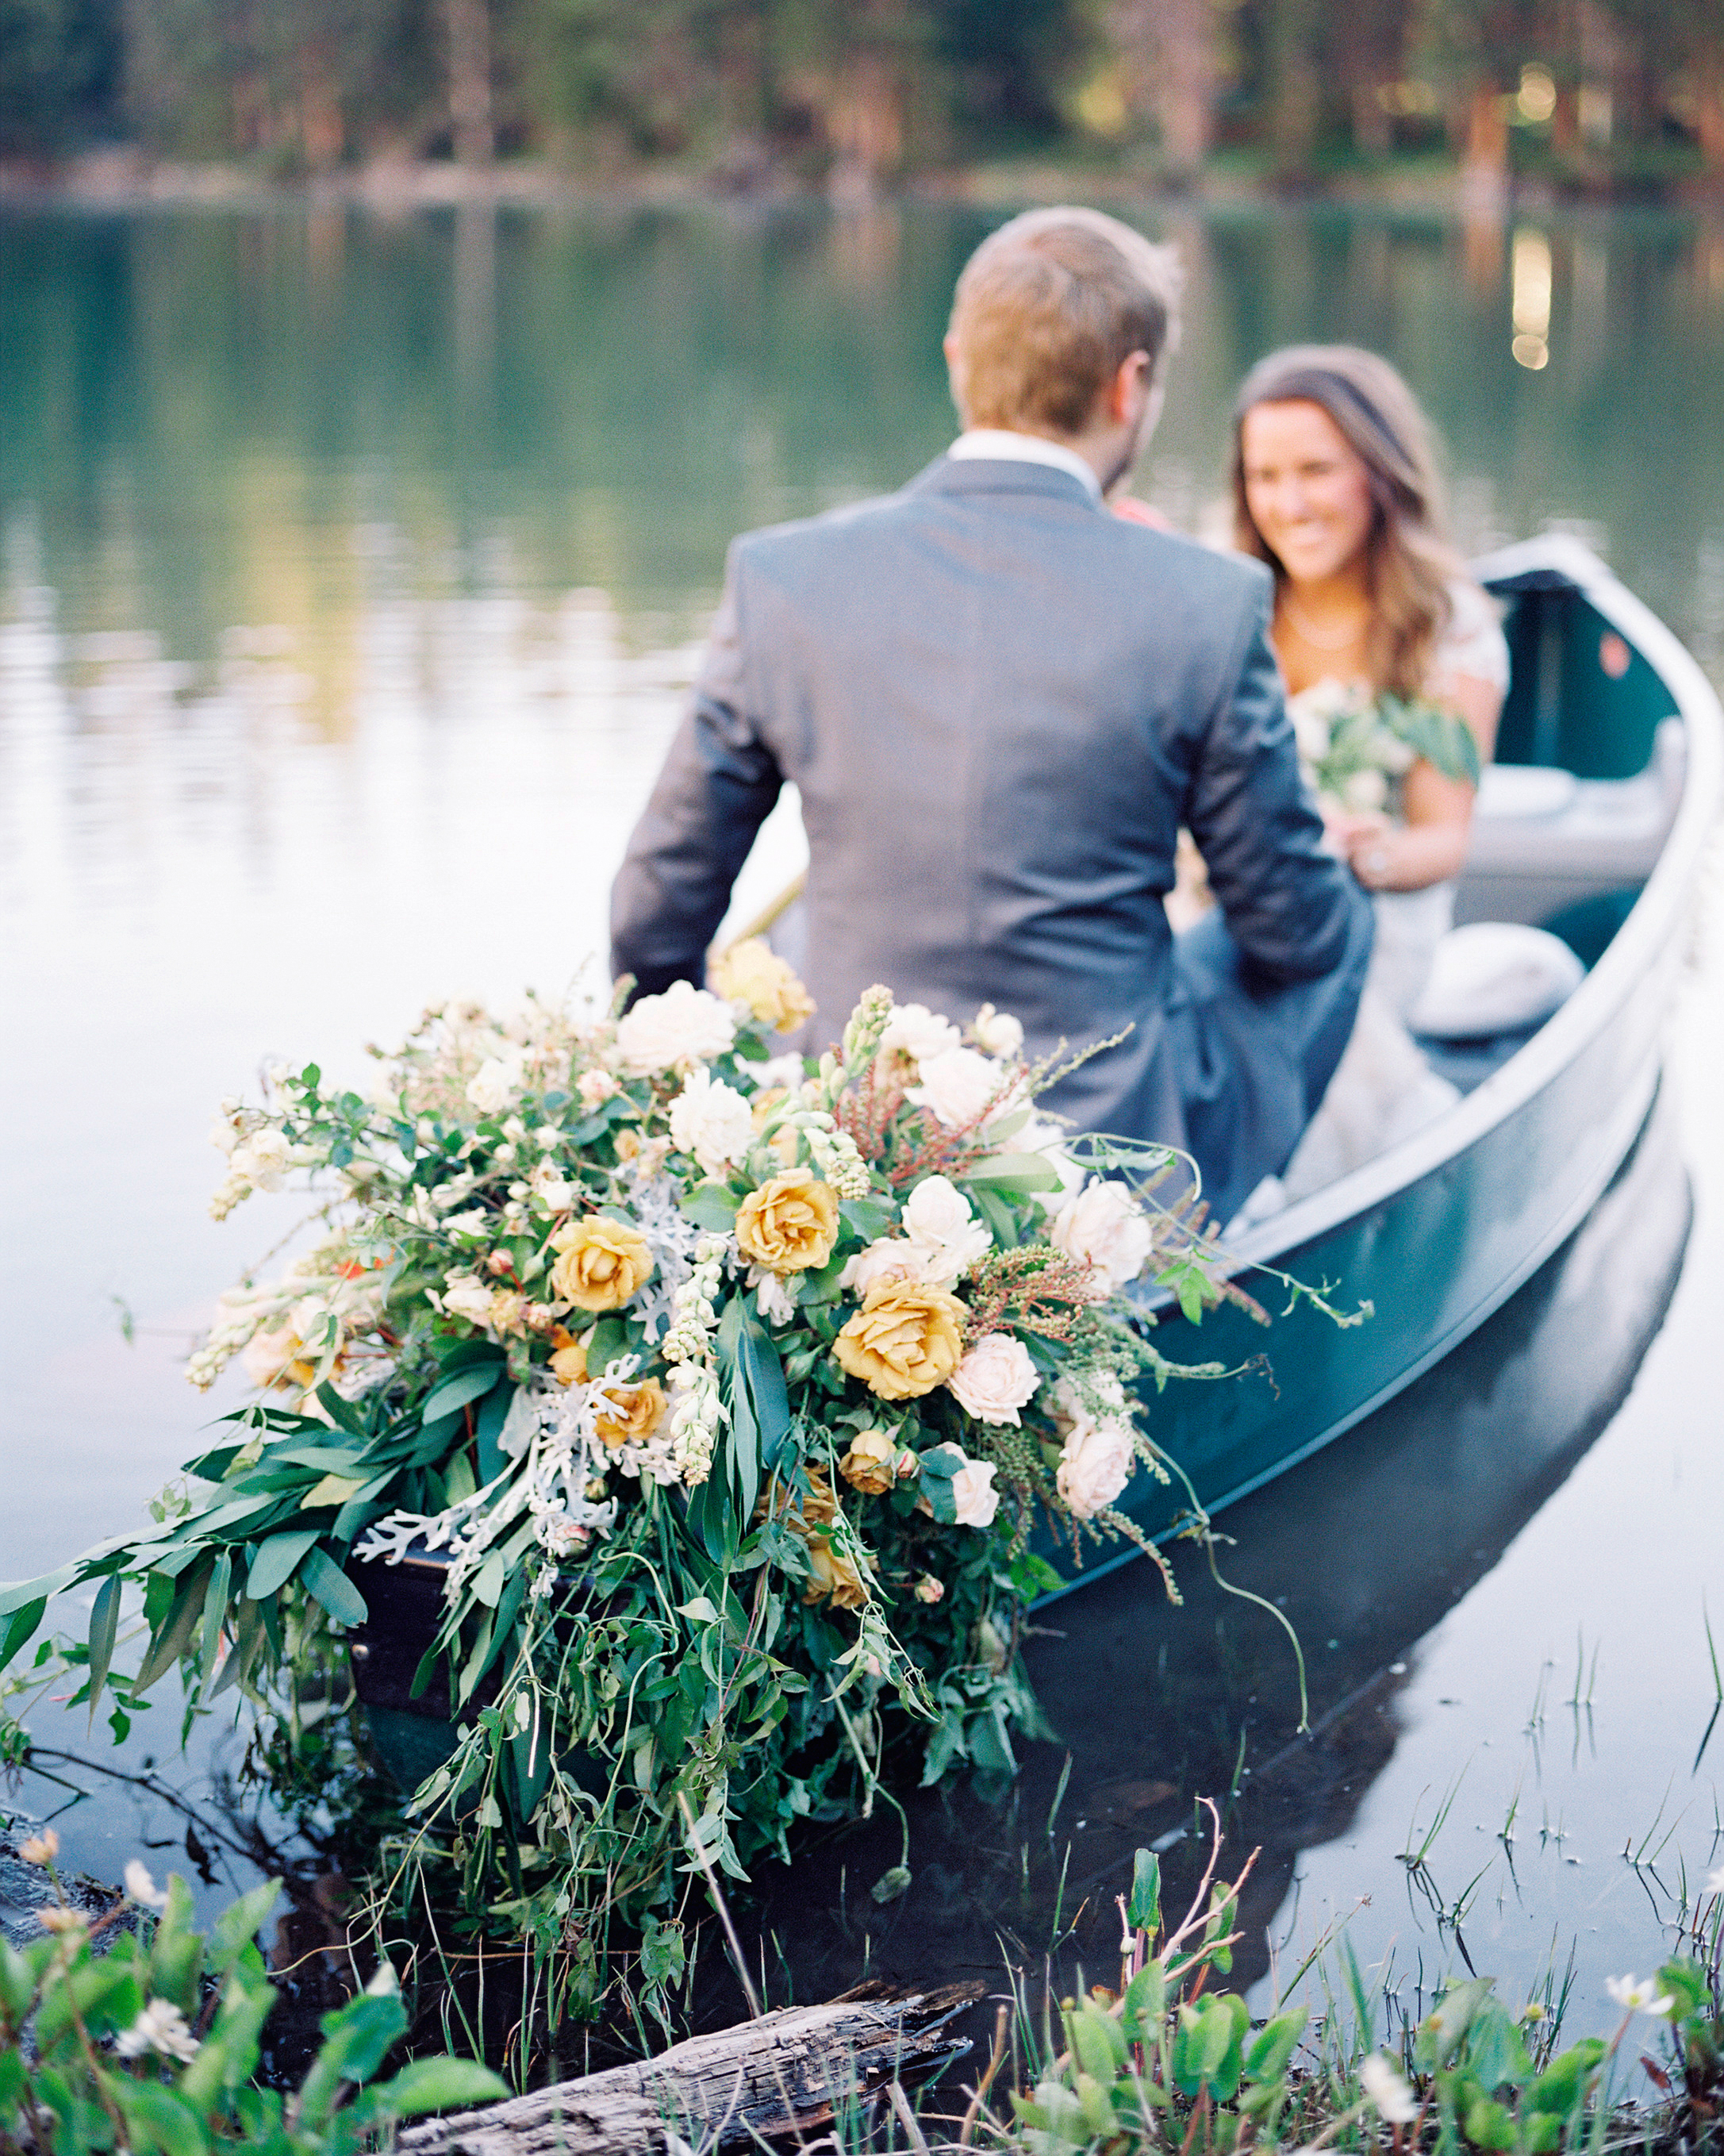 mckenzie-brandon-wedding-canoe-104-s112364-1115.jpg